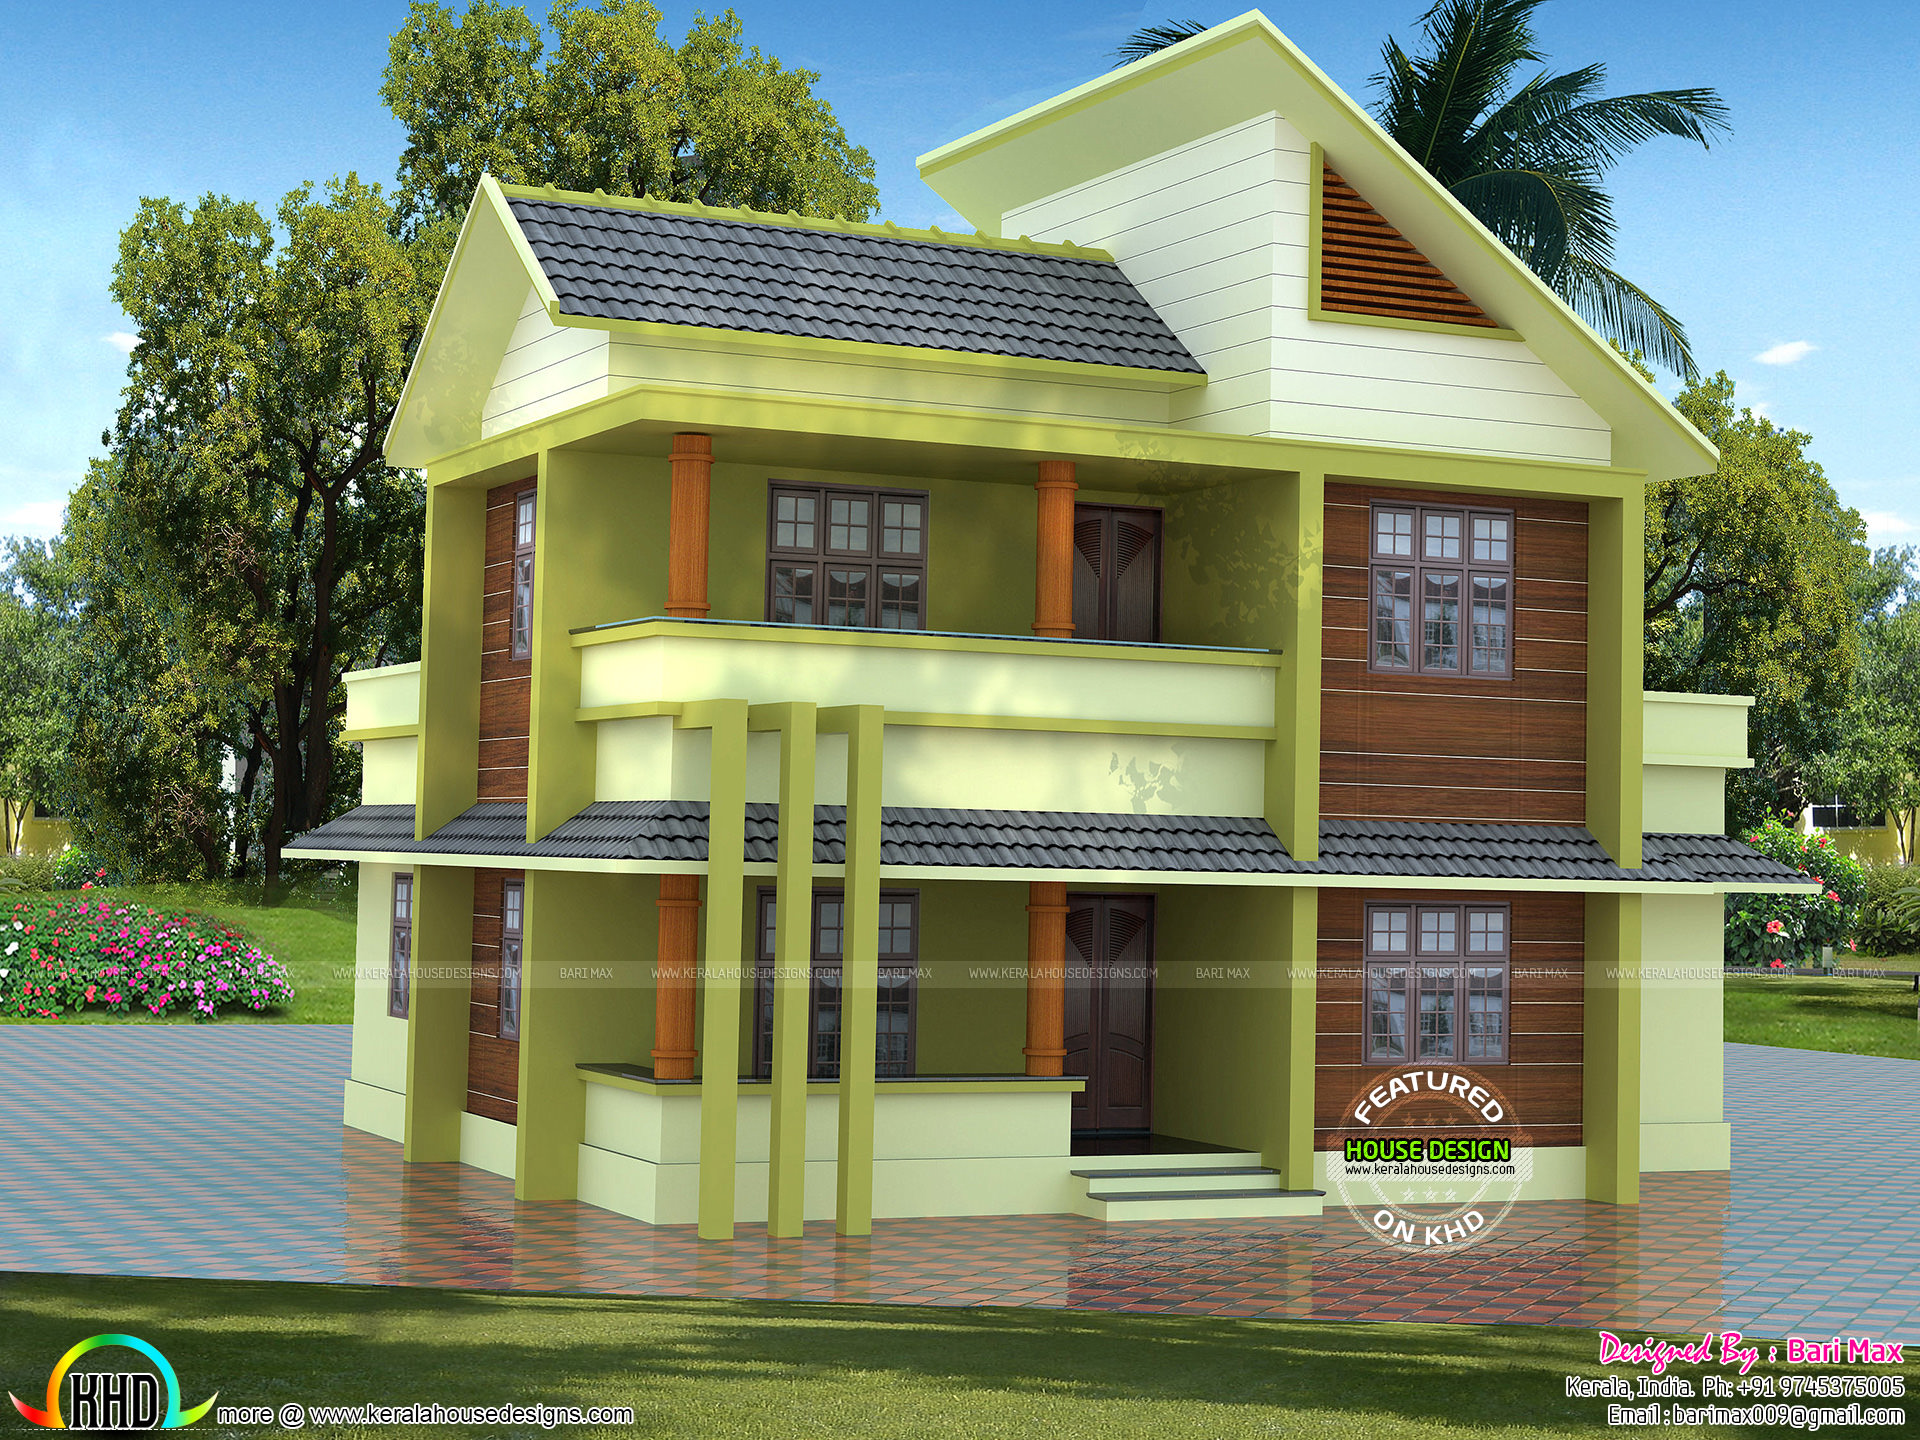 20 Lakh Home In Surat Kerala House Plans Below 30 Lakhs